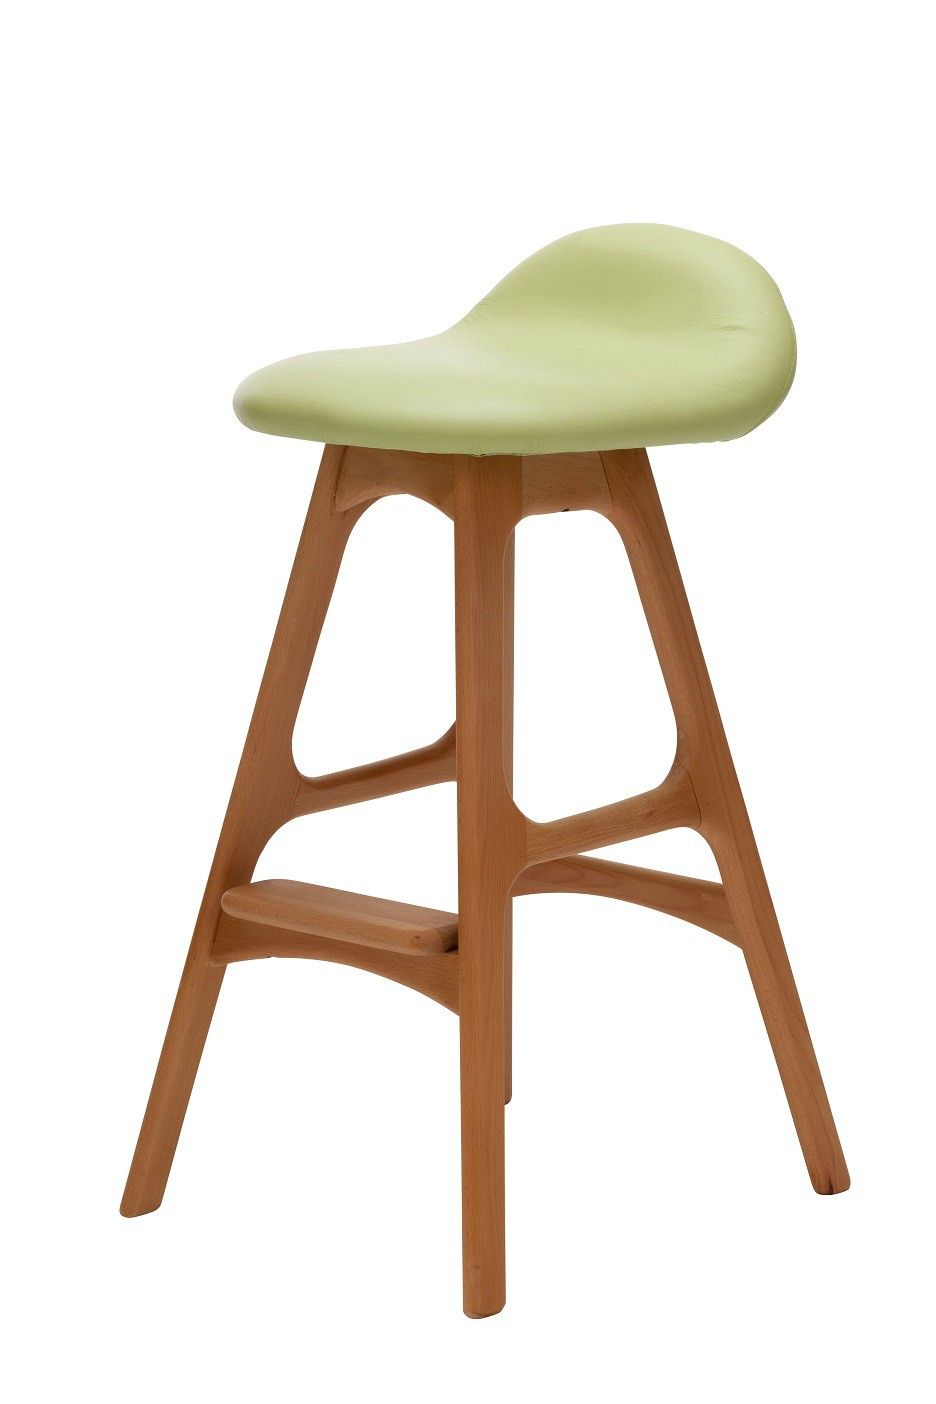 Replica erik buch bar stool 66cm in green leather and beech this sleek and elegant replica erik buch bar stool is sure to be voted the most comfortable